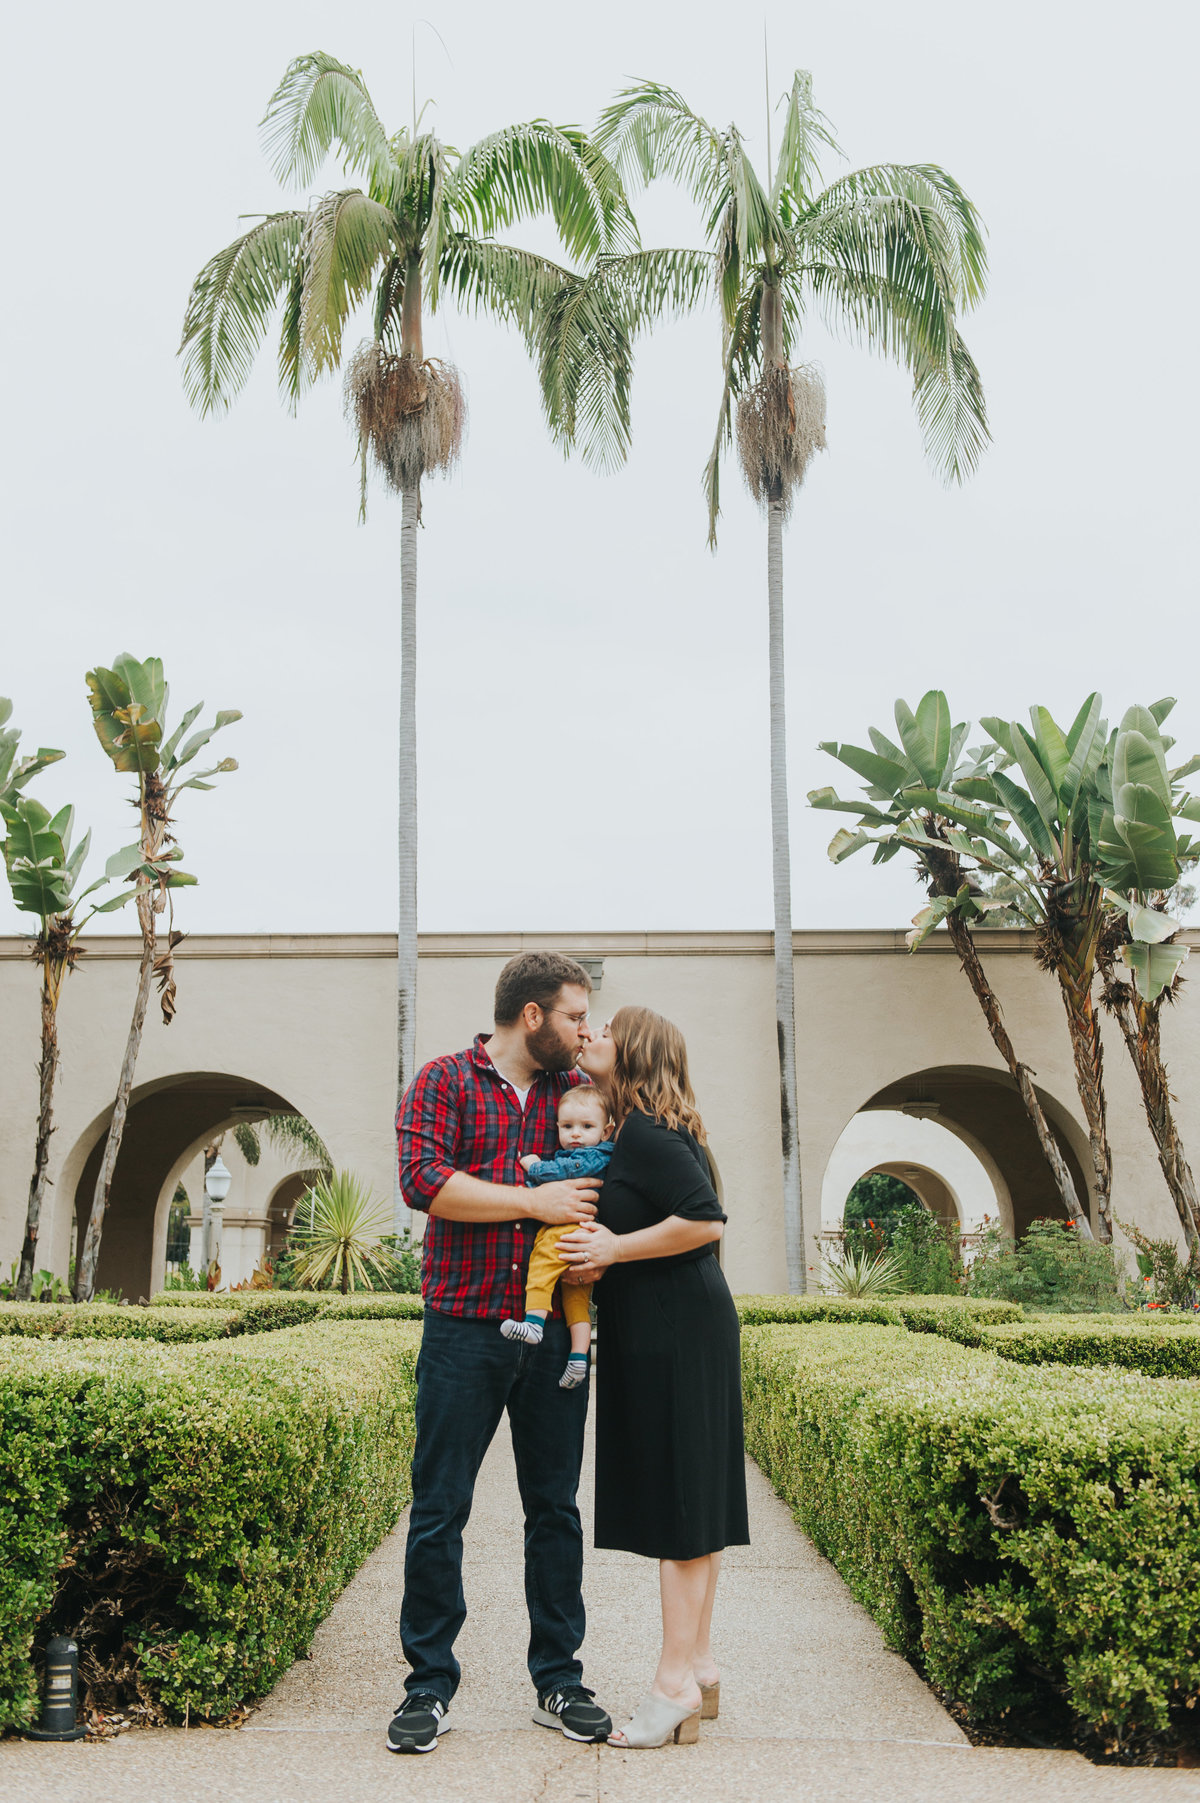 sandiego-portrait-lifestyle-photographer-photography-family-lindsay-kreighbaum-8